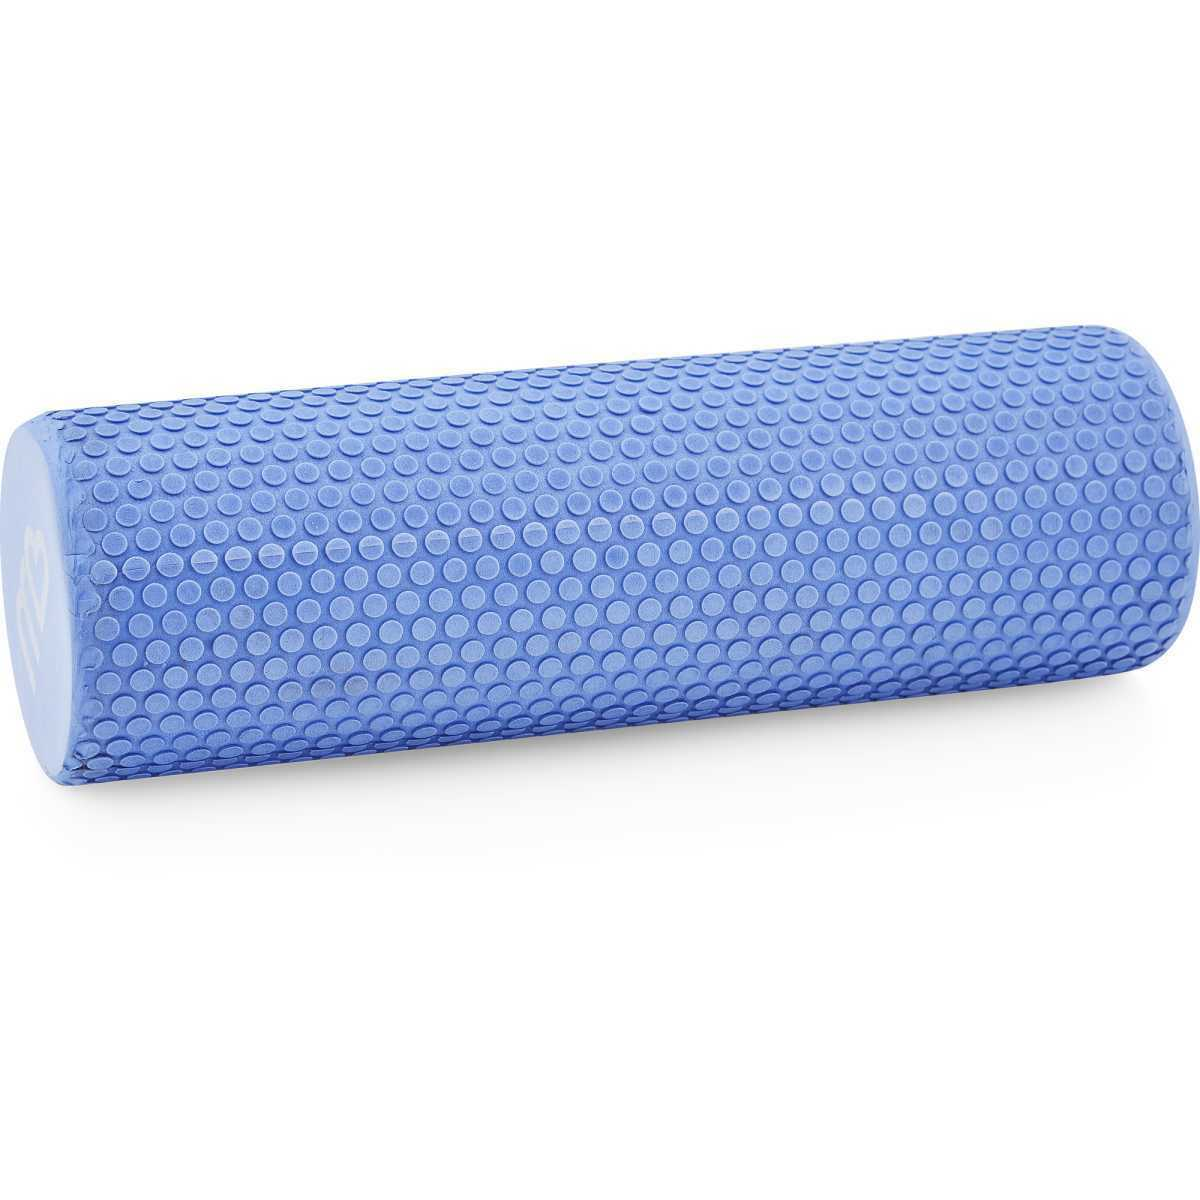 MB Active By Michelle Bridges TRAVEL FOAM ROLLER ROLLER FOAM ROTuces Muscular Aches & Pains f2b93d